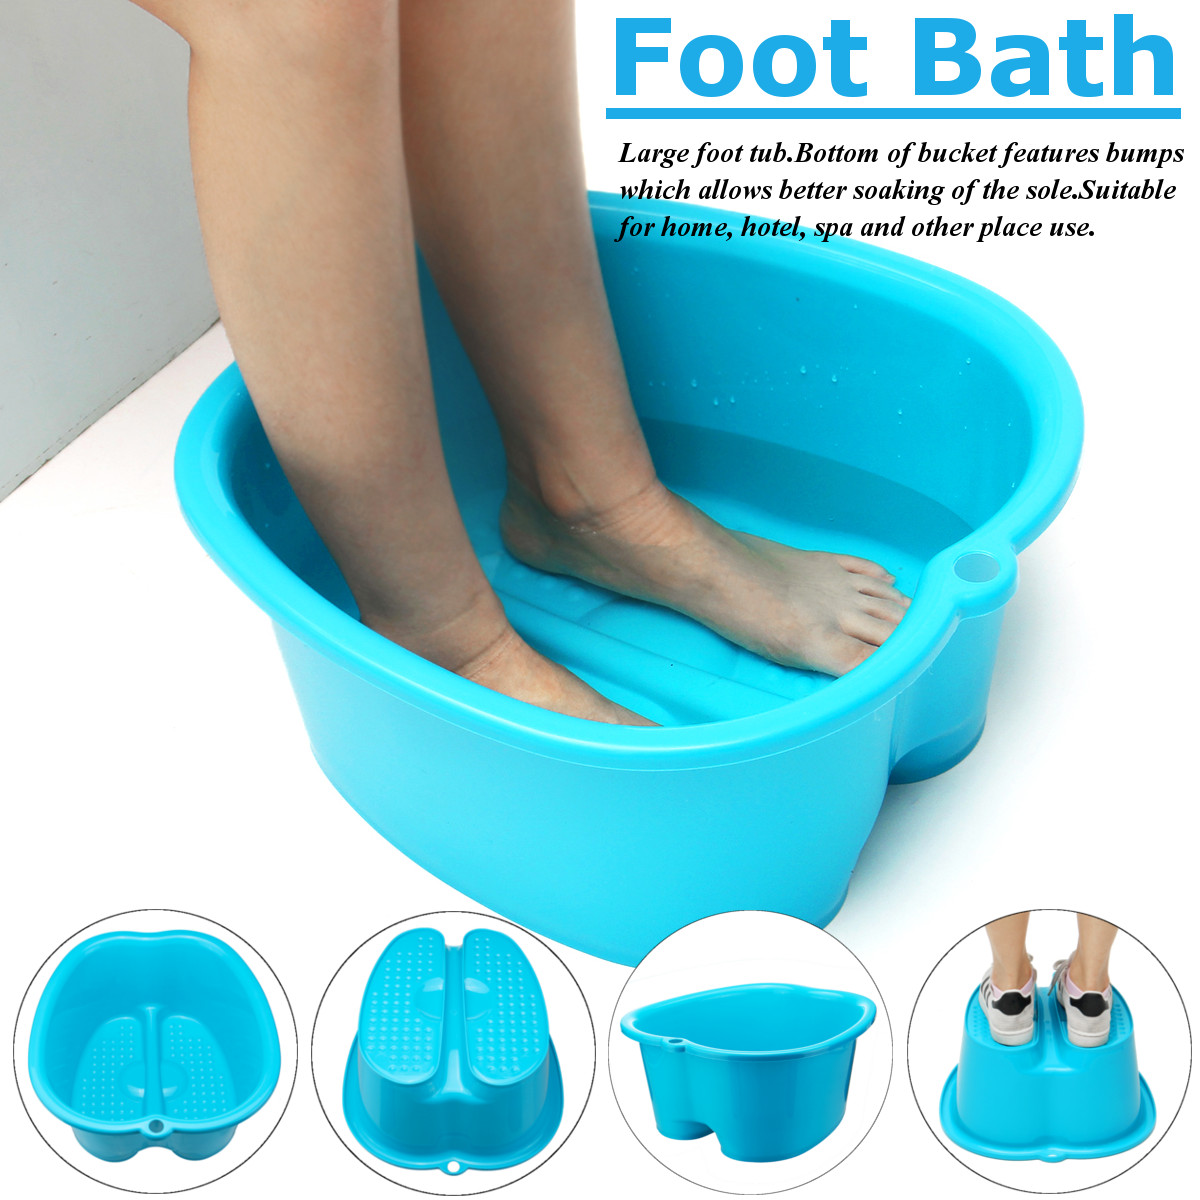 Blue Thicken Plastic Foot Massage Roller Foot Bath Tub Bobble Bath Salt Pots Bump Wash Foot Care Tool Basin Household SPA Large vatimin oil extract foot bath skin care calluses removing skin smooth foot bath salt 300g free shipping